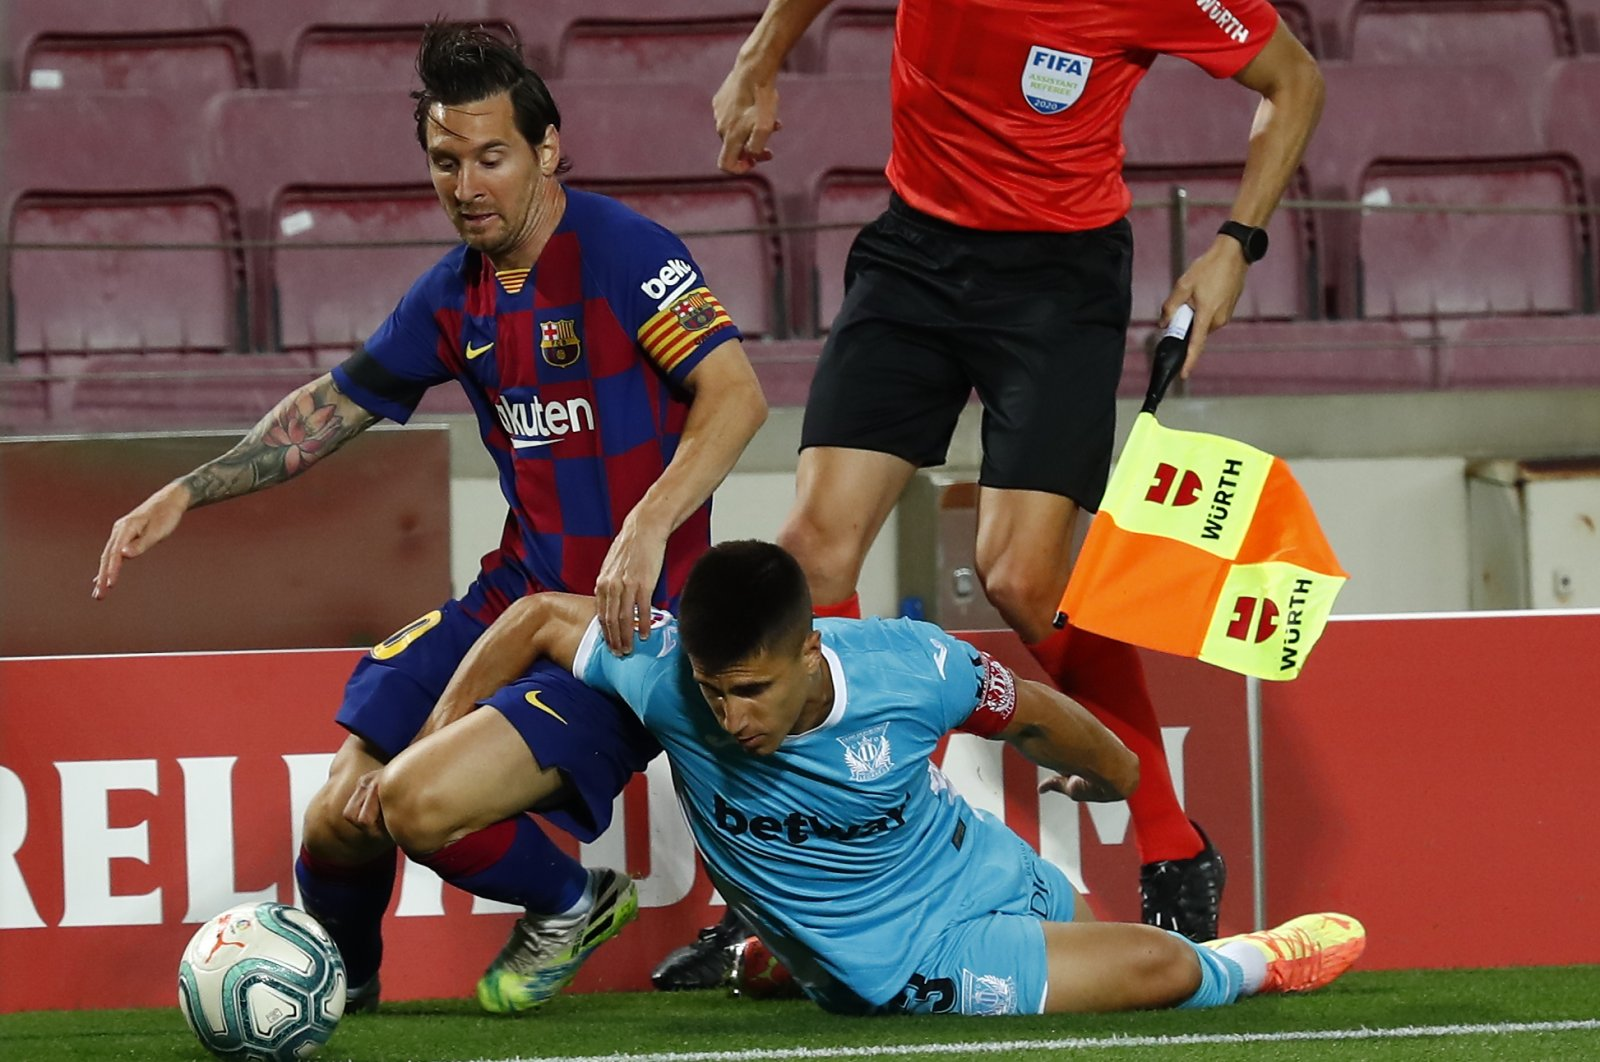 FC Barcelona's Lionel Messi (L) vies for the ball with Leganes' Unai Bustinza during a La Liga football match at the Camp Nou stadium in Barcelona, Spain, June 16, 2020. (AP Photo)